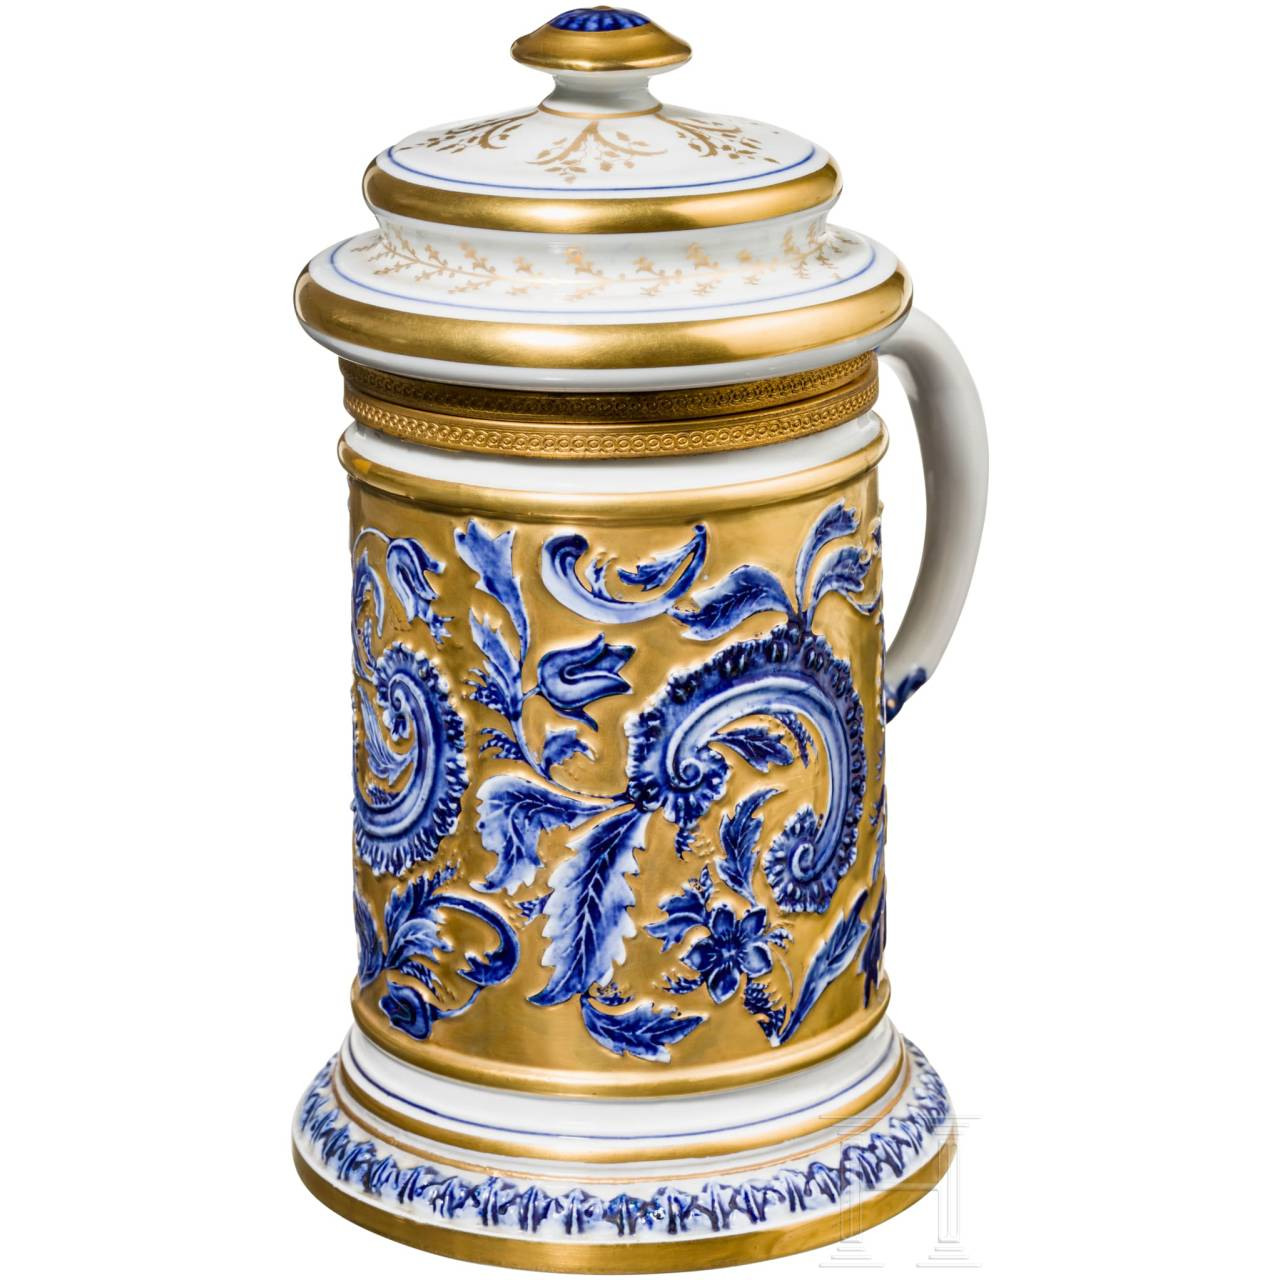 A large and magnificent French jug with porcelain lid, Sèvres, 19th century